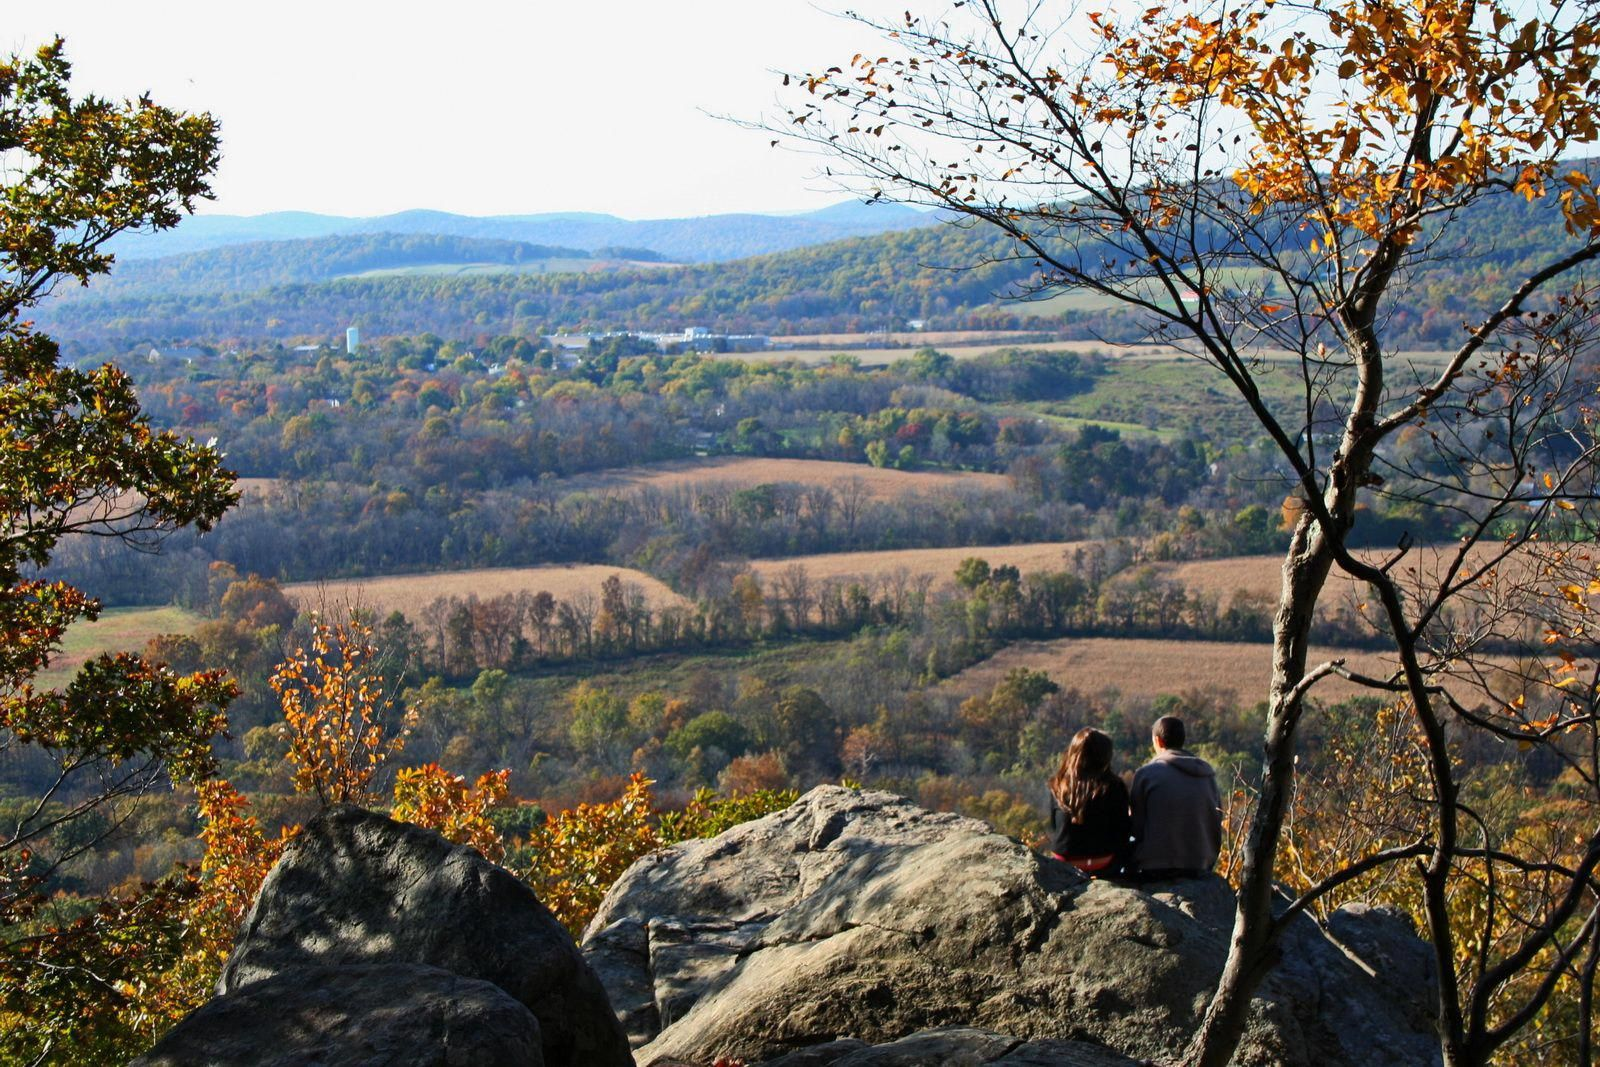 Point Mountain in Hunterdon County, New Jersey